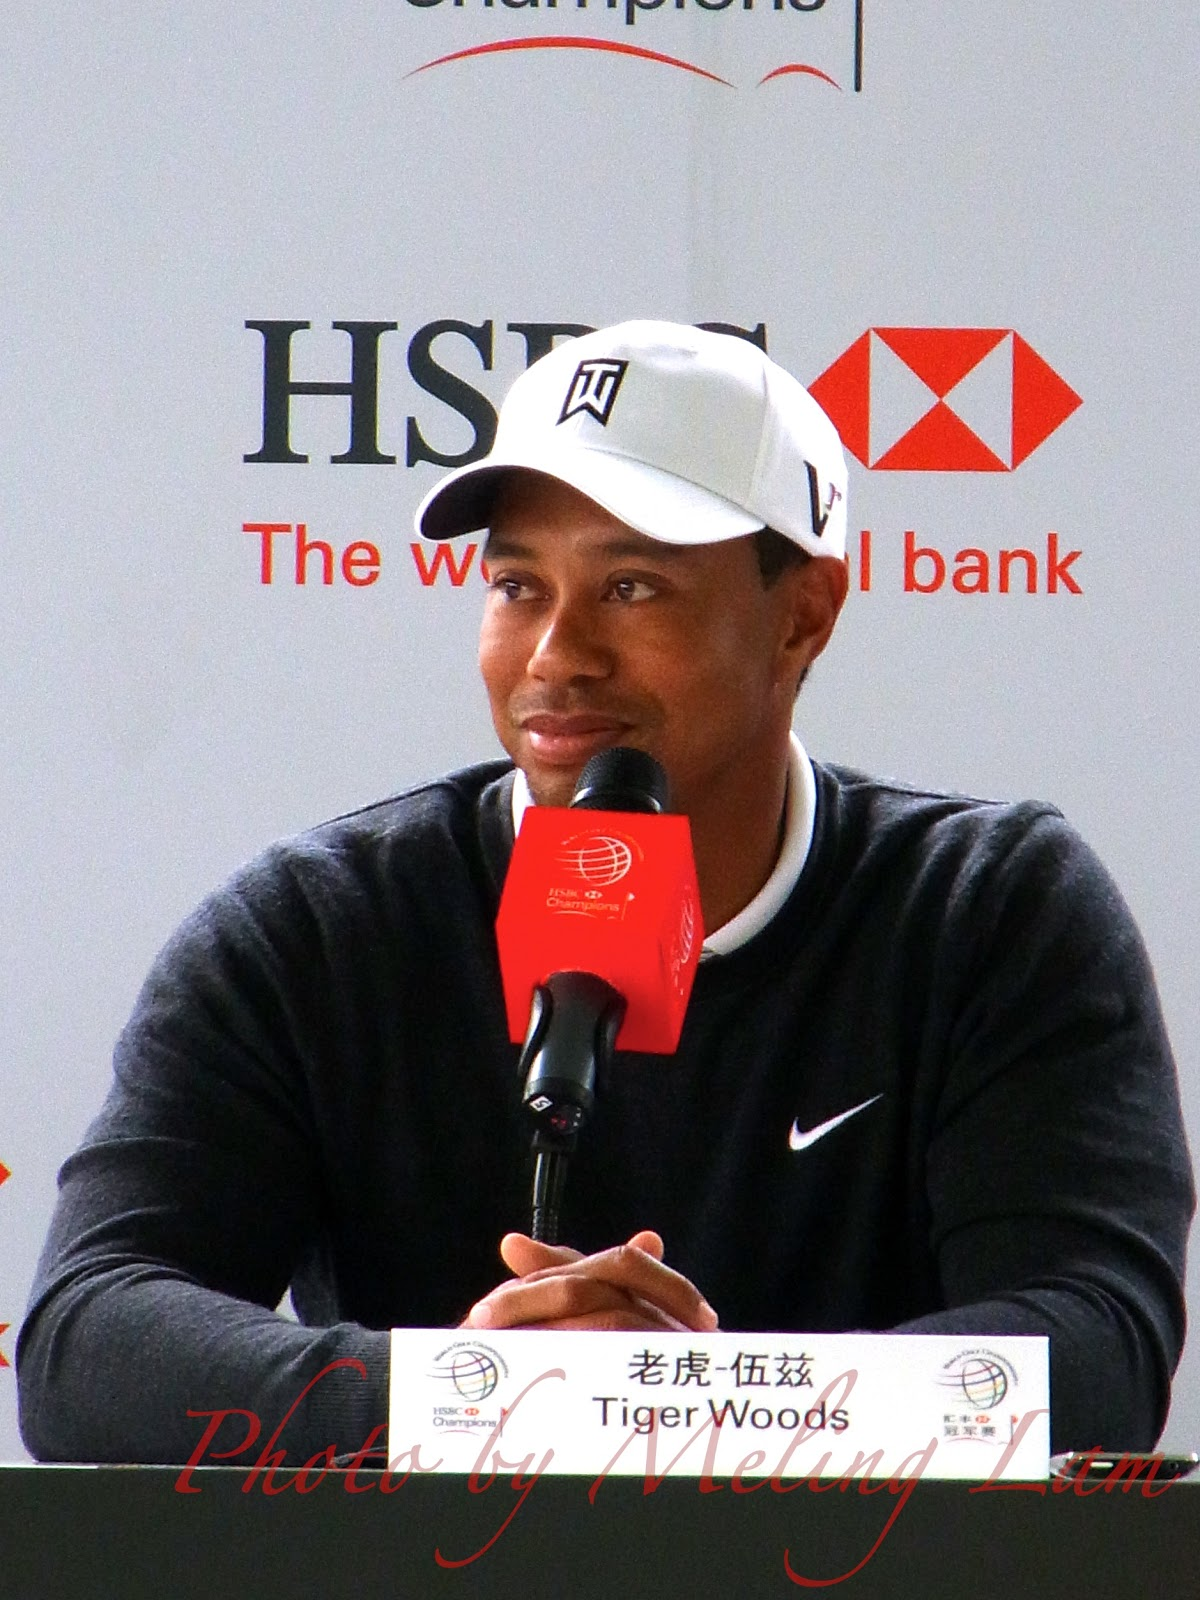 tiger woods wgc-hsbc golf champions pro-am Competition shanghai sheshan